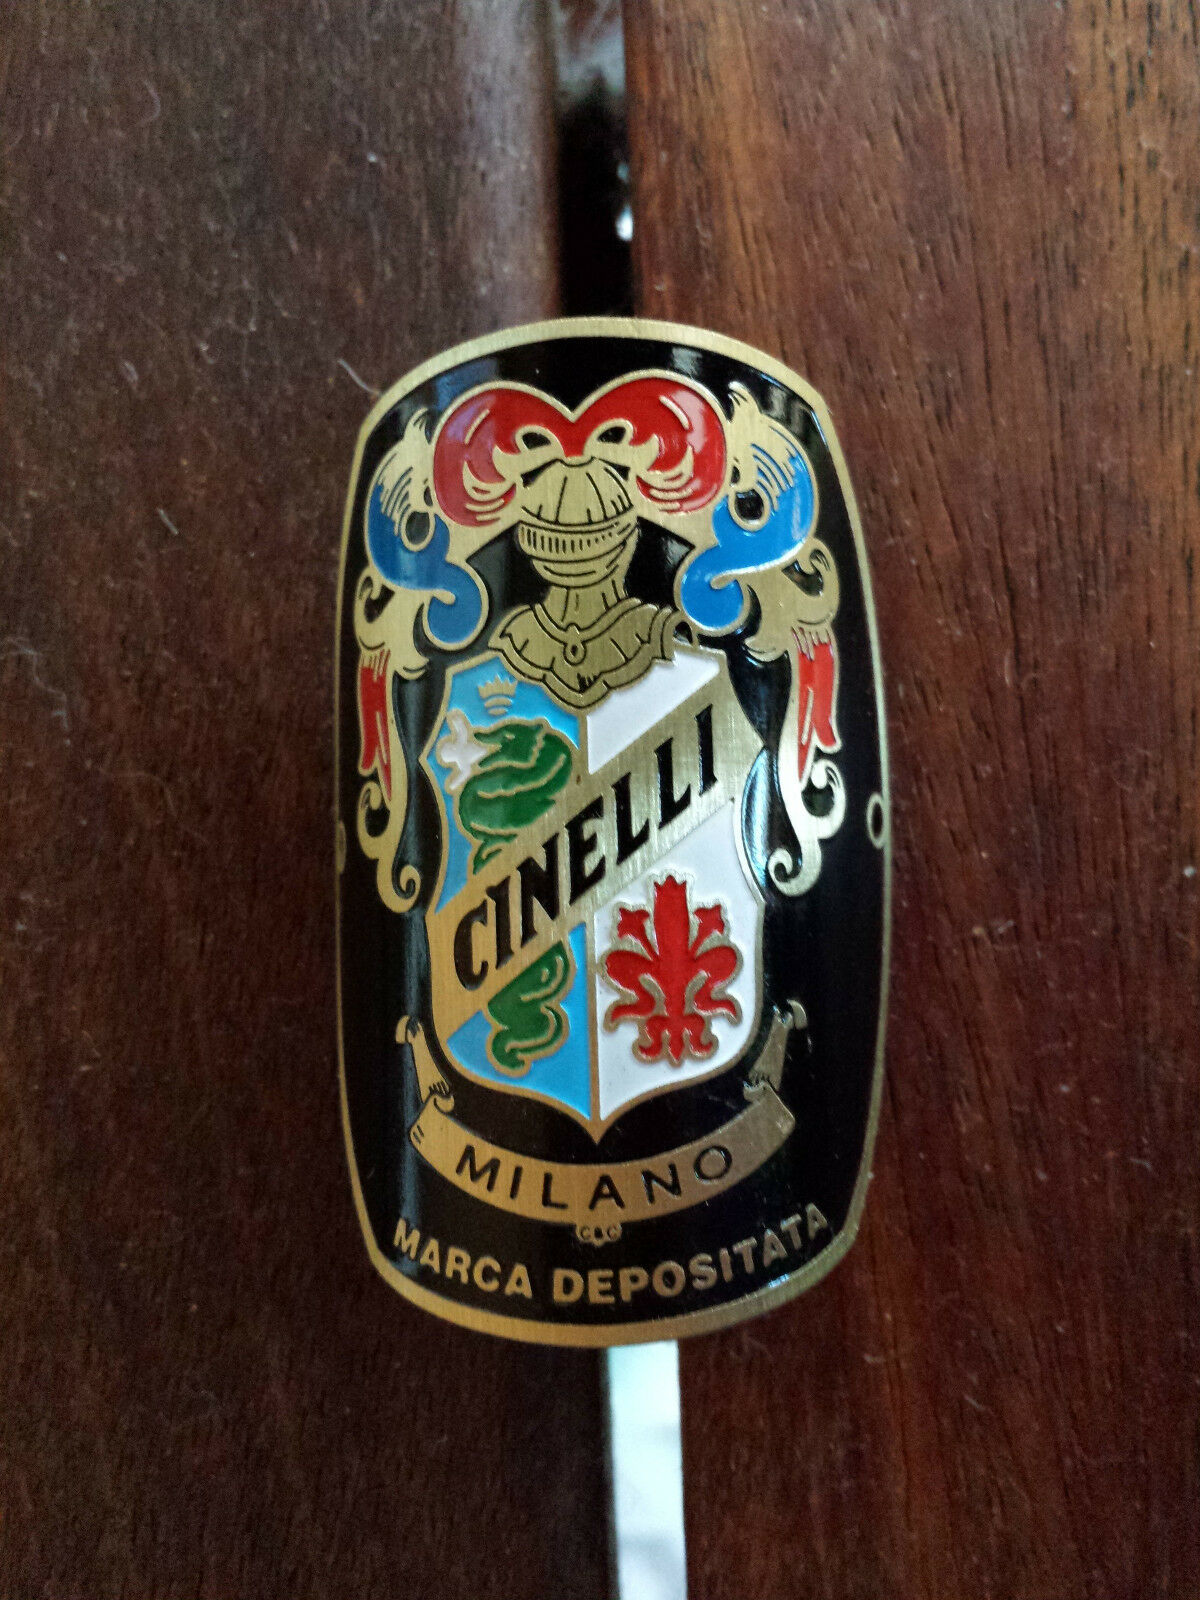 Cinelli Milano Bicycles Metal Headbadge - Gold Gold Gold Type c0407a